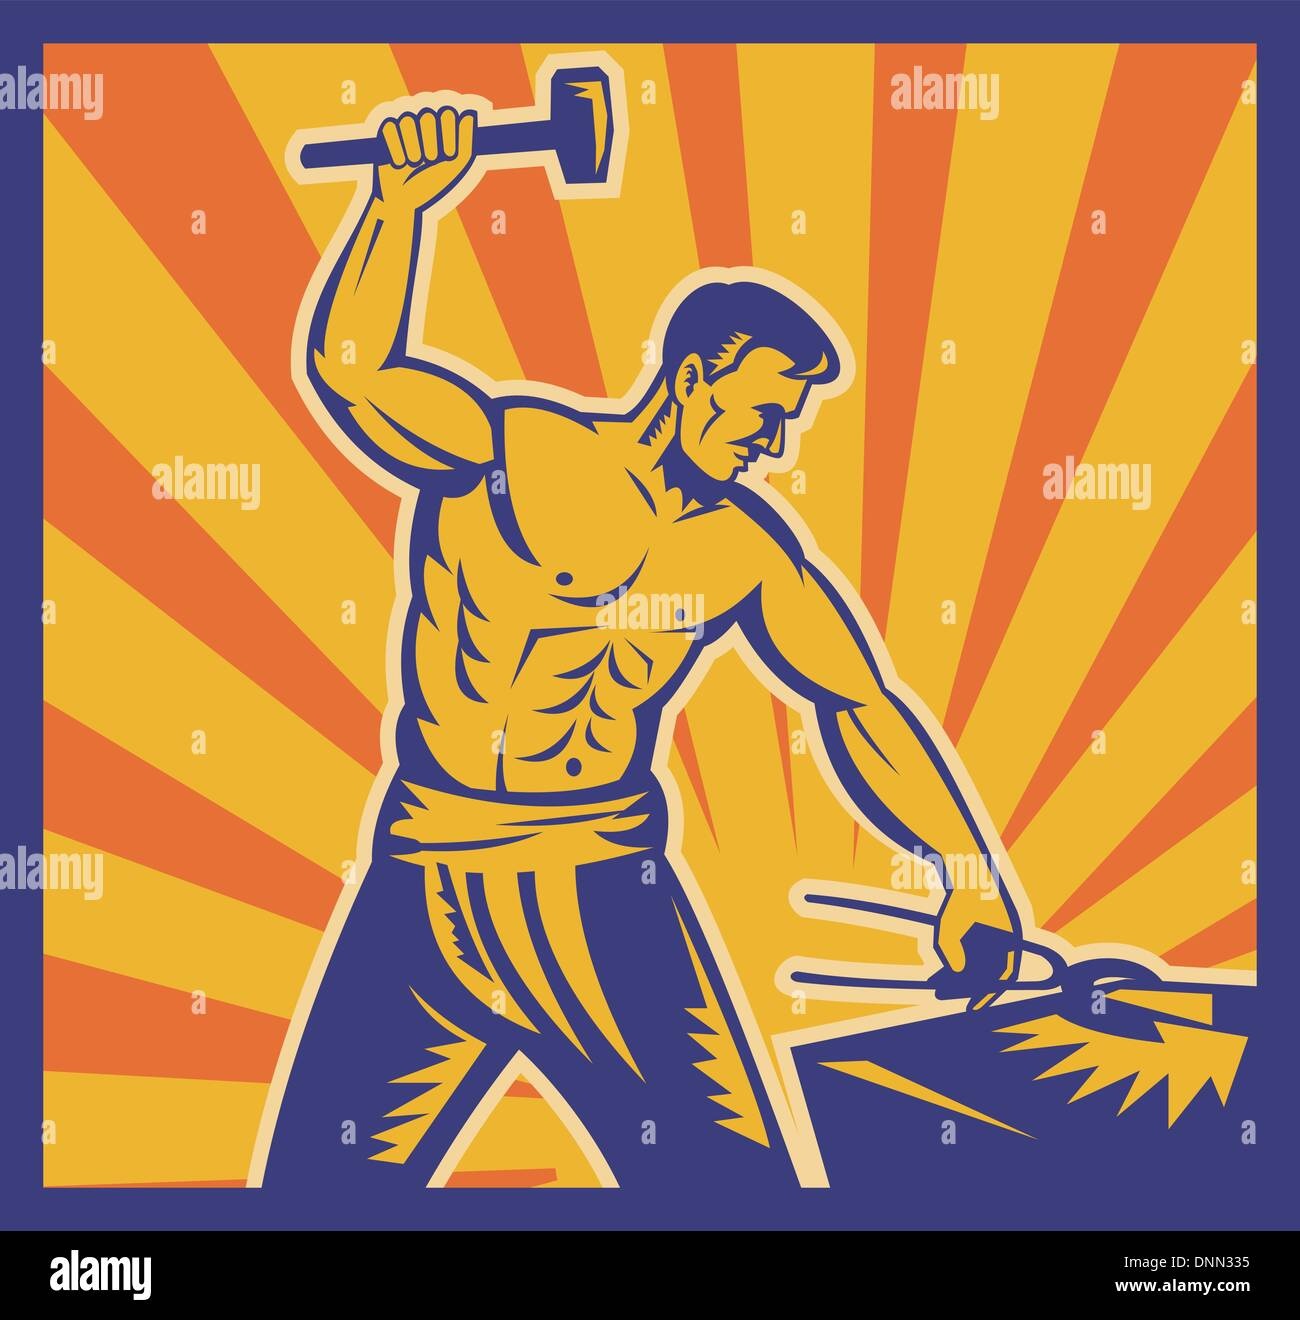 illustration of a Blacksmith at work wielding a hammer with sunburst in background done in retro woodcut style. - Stock Vector